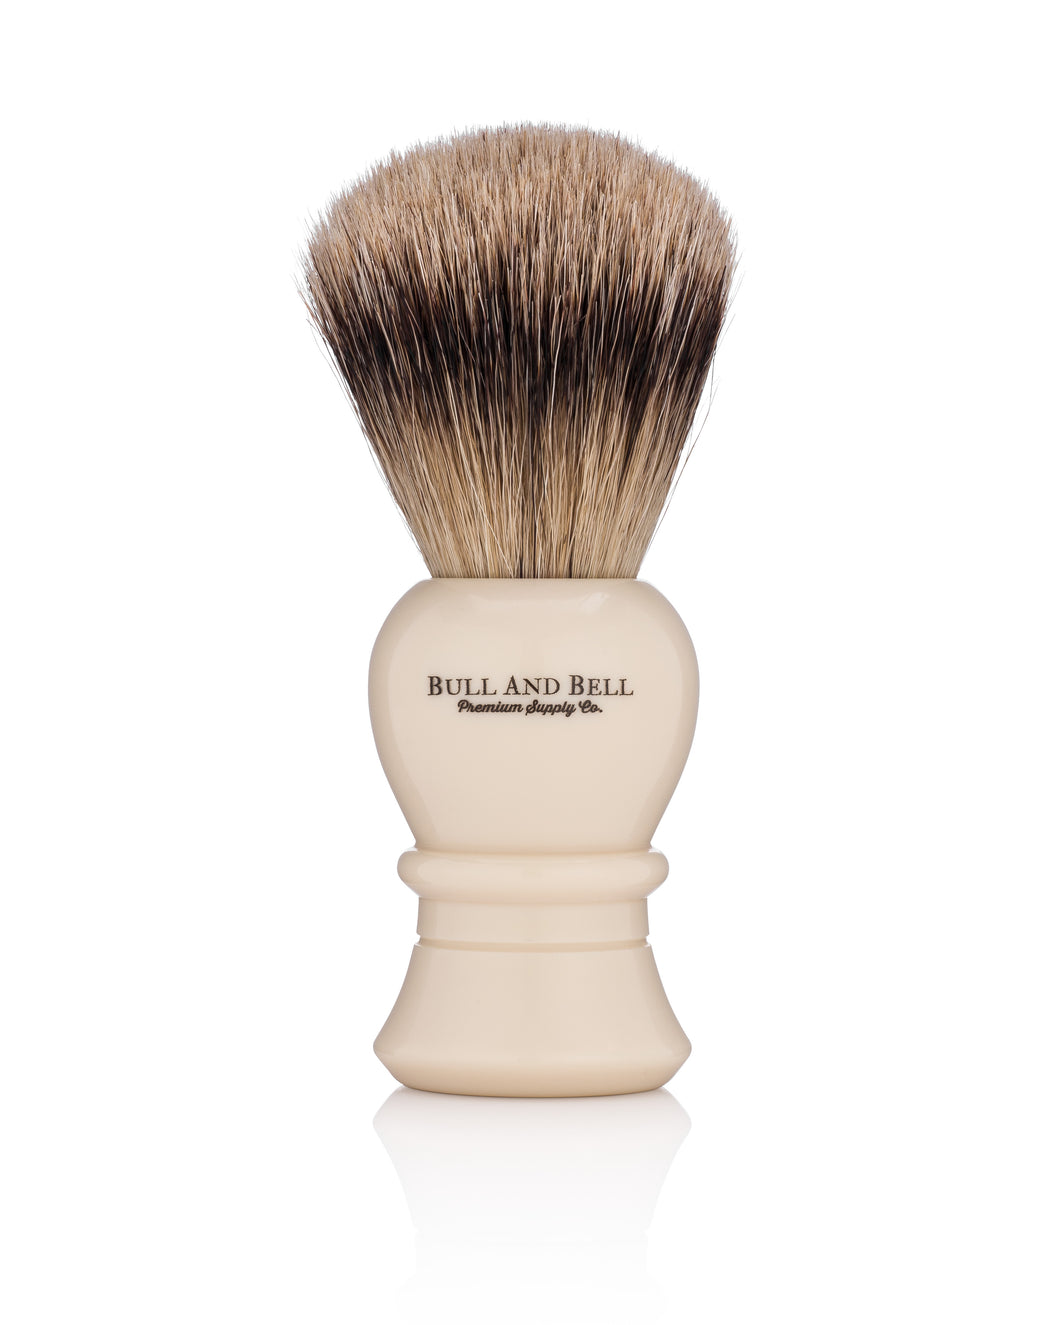 Bull and Bell Premium Shave Brush